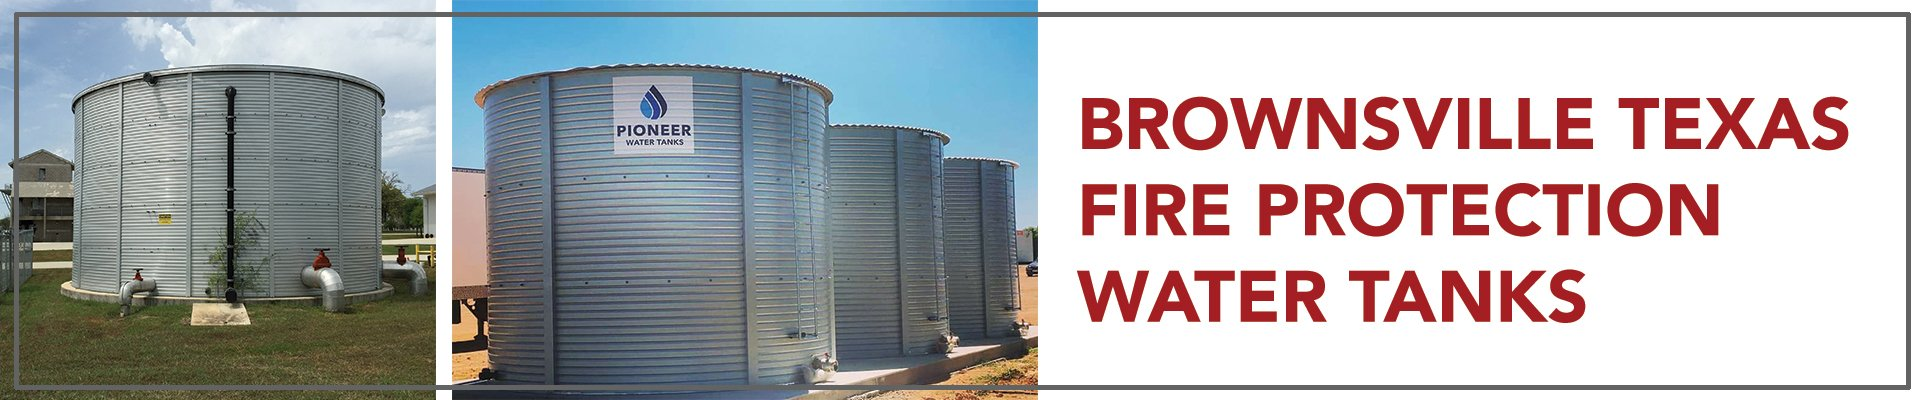 Brownsville Texas Fire Protection Water Tanks